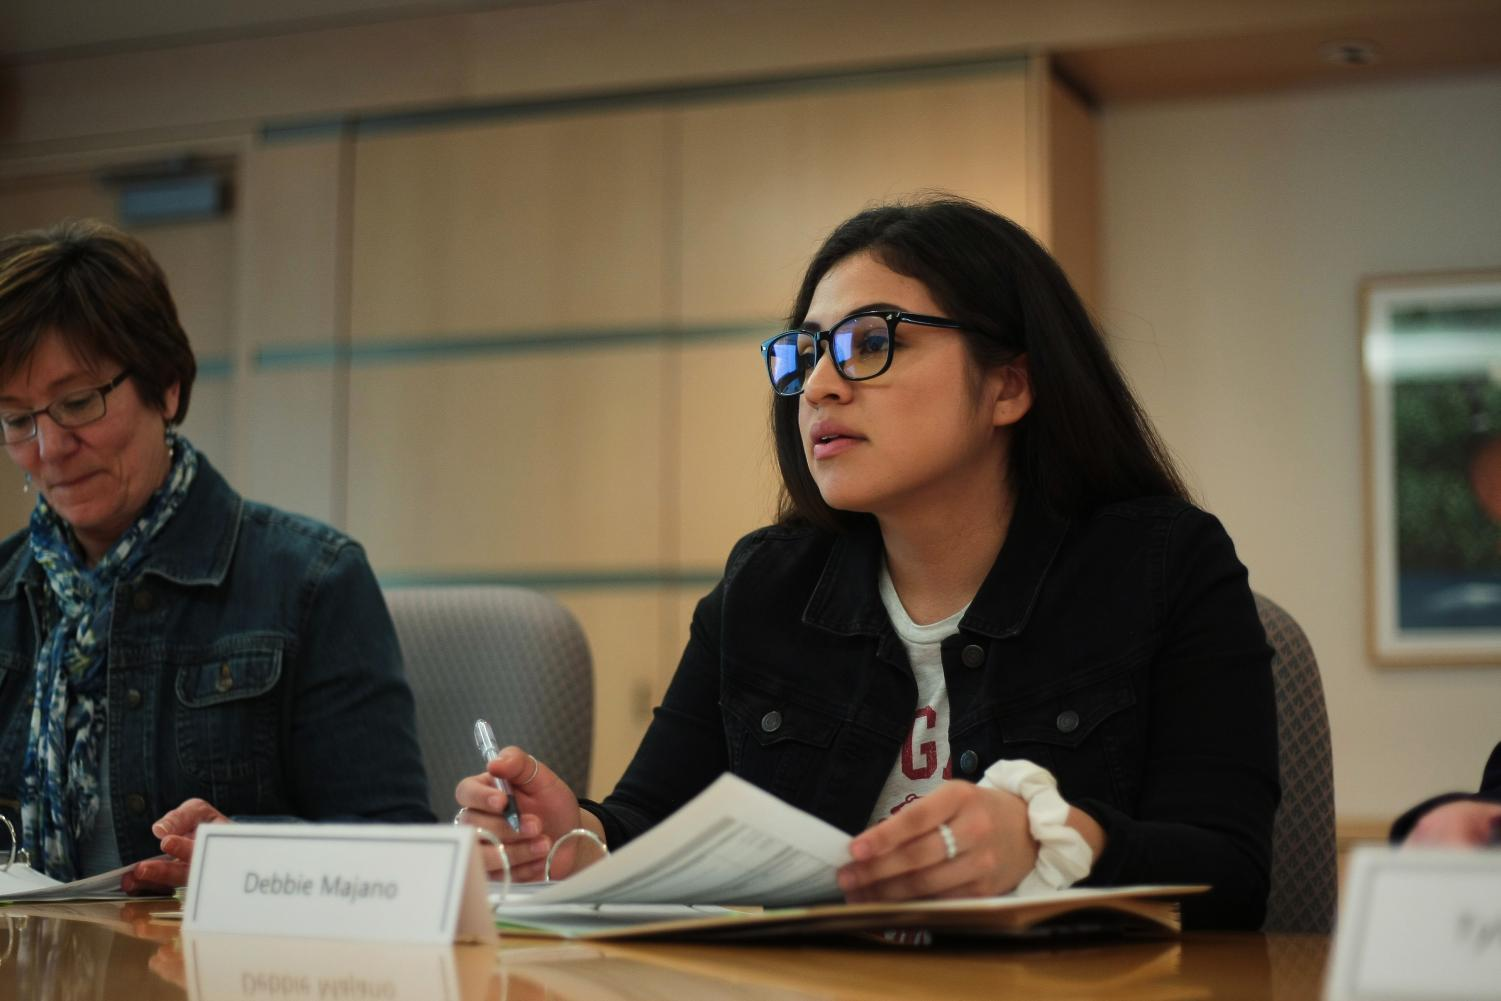 WSU S&A fee committee member Debbie Majano reviews the 2019-2020 WSU service and activities budget at an S&A meeting Monday in Lighty. The committee meets with groups later in the week.